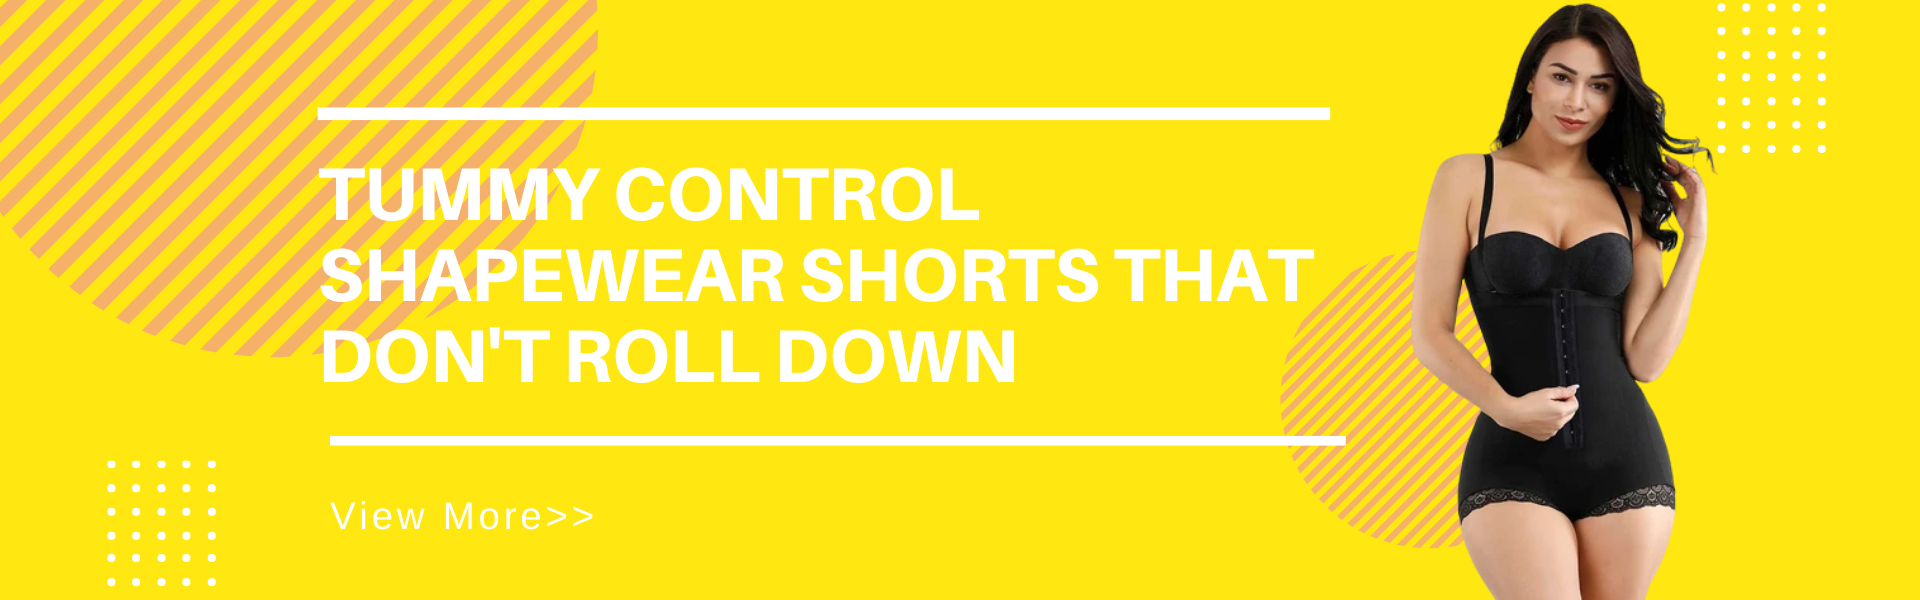 Tummy Control Shapewear Shorts that Don't Roll Down